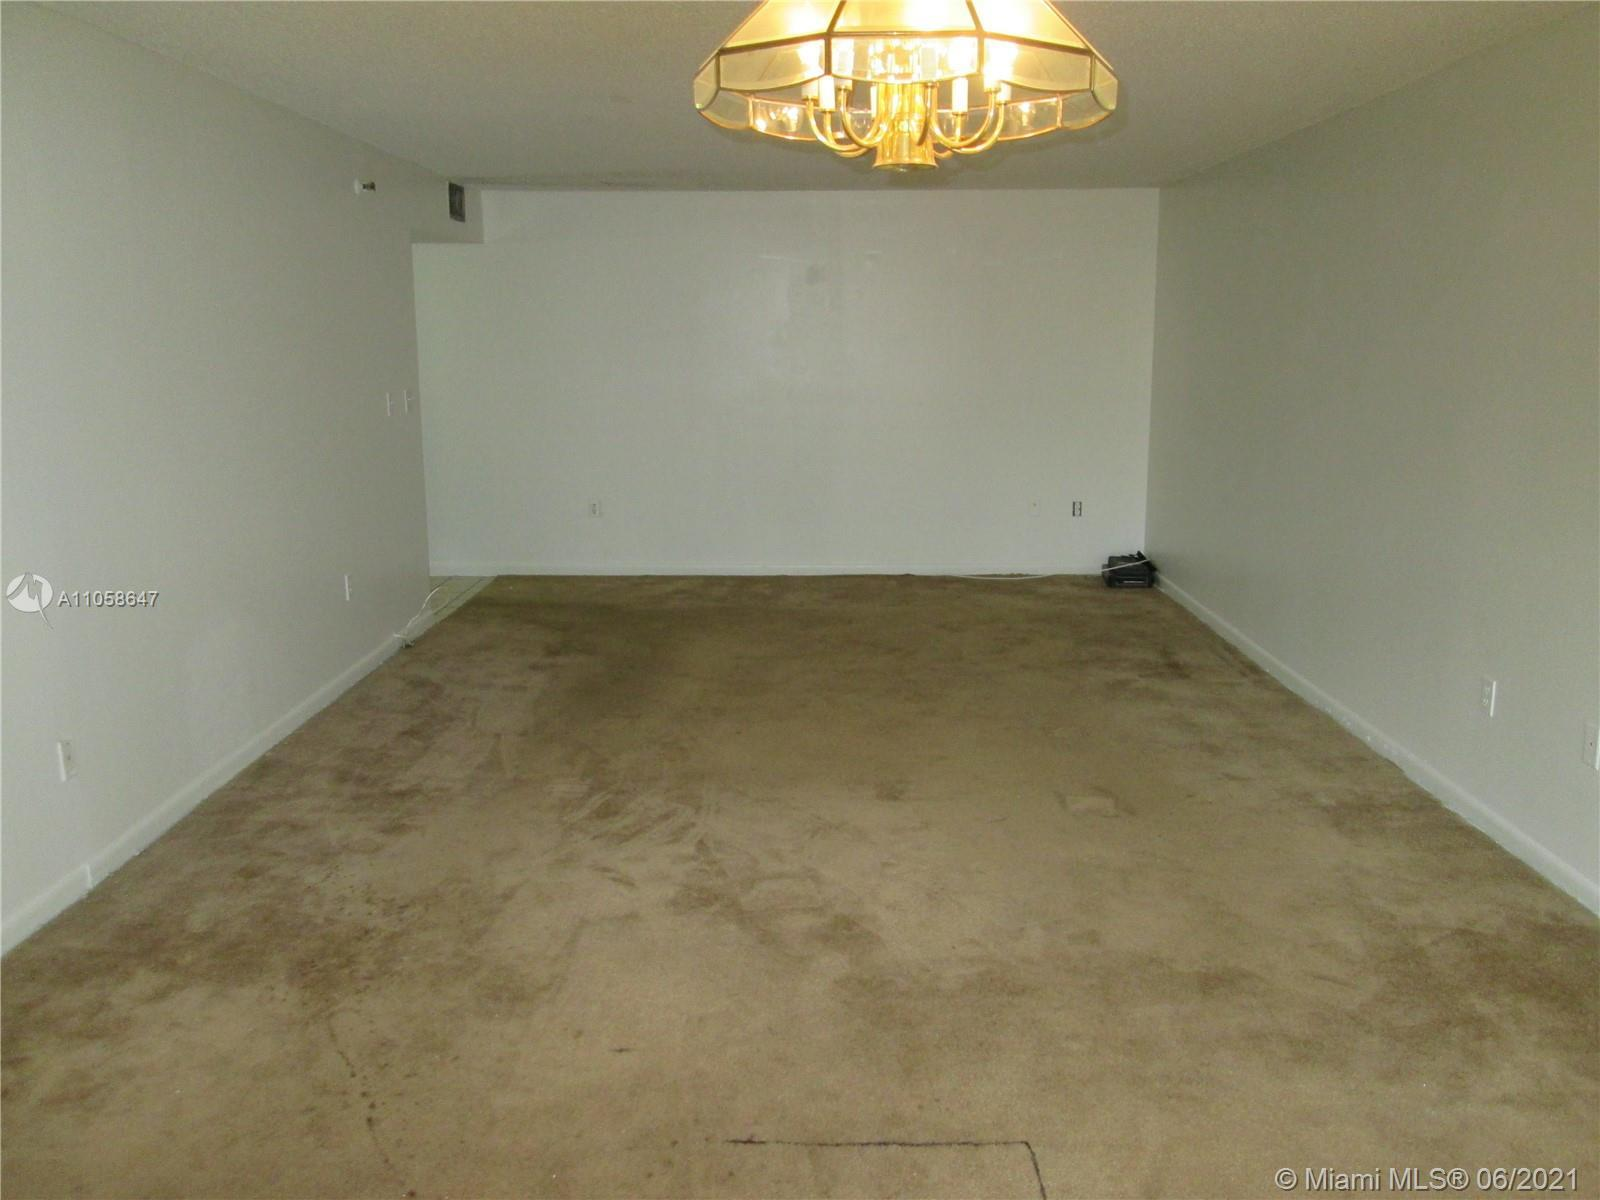 One of a kind two bedroom apartment and two bath featuring about 1665 sq ft of living space. Corner